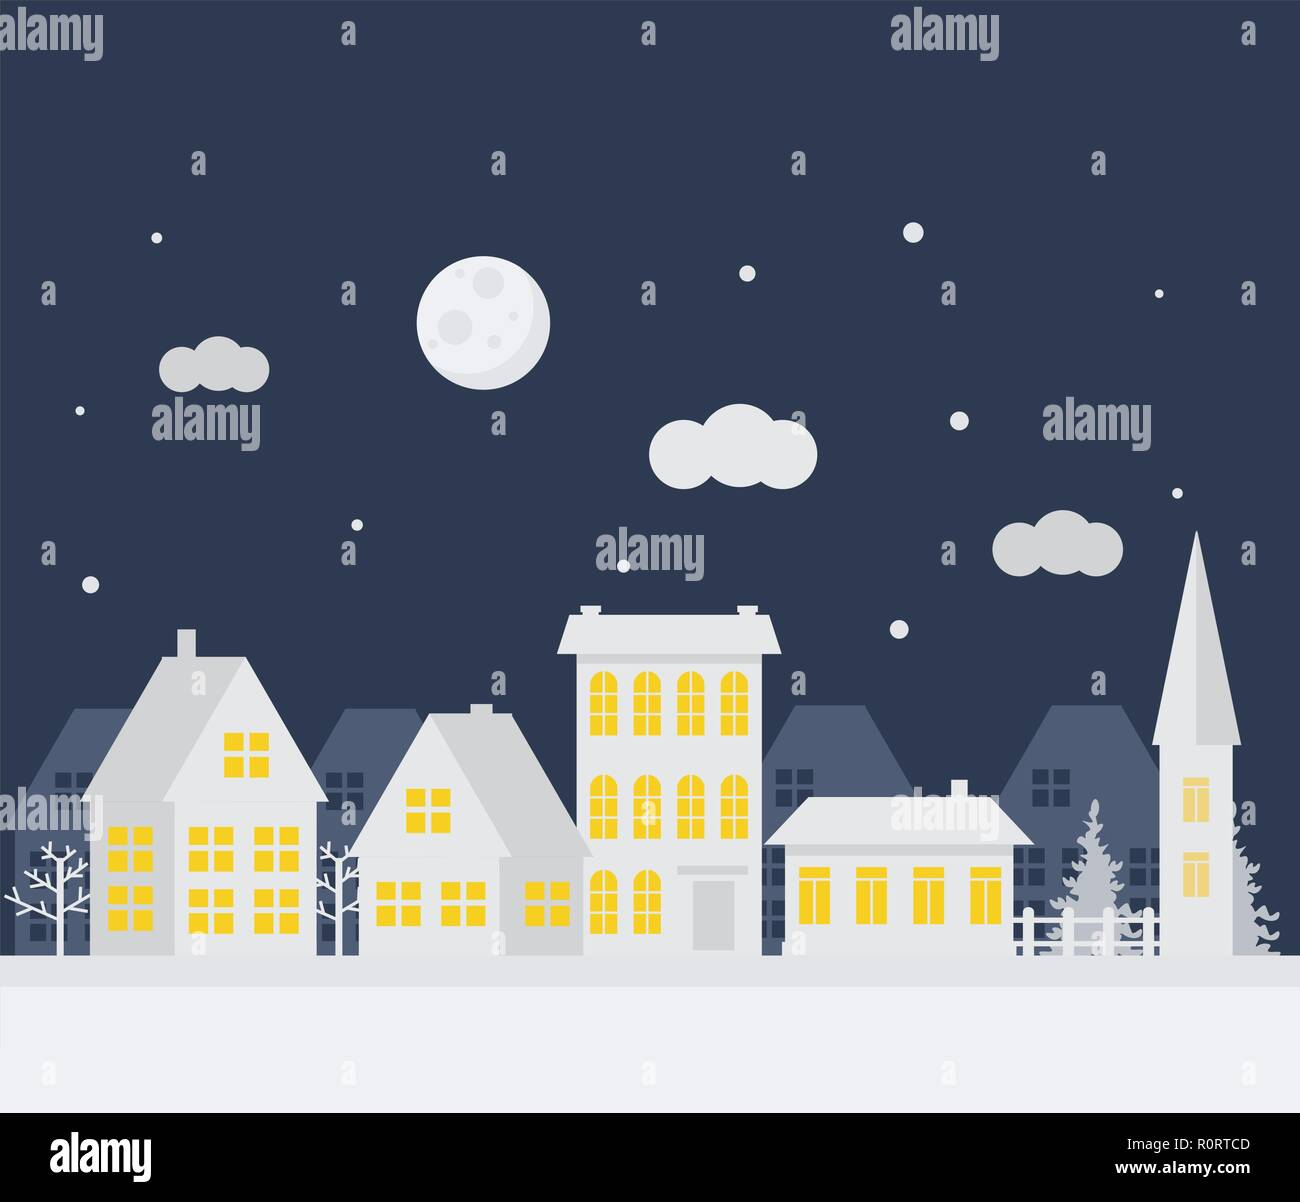 merry christmas and happy new year a small winter city paper art in digital style vector illustration